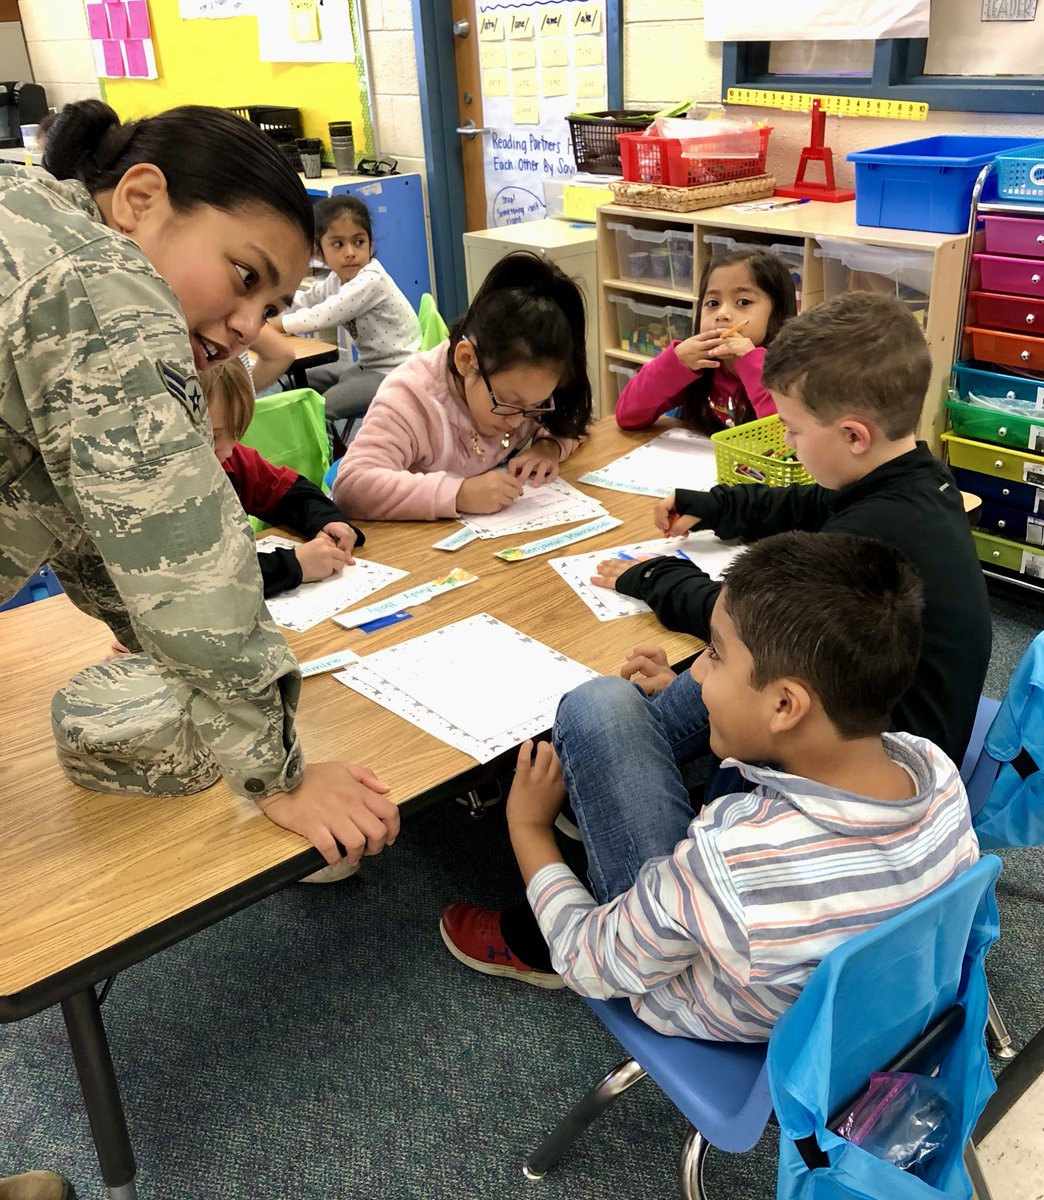 Barcroft's military partners help 1st graders write letters  to hospitalized children. <a target='_blank' href='http://search.twitter.com/search?q=DayofService'><a target='_blank' href='https://twitter.com/hashtag/DayofService?src=hash'>#DayofService</a></a> <a target='_blank' href='http://search.twitter.com/search?q=APSVolunteerStrong'><a target='_blank' href='https://twitter.com/hashtag/APSVolunteerStrong?src=hash'>#APSVolunteerStrong</a></a> <a target='_blank' href='http://twitter.com/APSVirginia'>@APSVirginia</a> <a target='_blank' href='http://twitter.com/APSVaSchoolBd'>@APSVaSchoolBd</a> <a target='_blank' href='http://twitter.com/cisofnova'>@cisofnova</a> <a target='_blank' href='http://twitter.com/GabyRivasAPS'>@GabyRivasAPS</a> <a target='_blank' href='http://twitter.com/VPLiaison'>@VPLiaison</a> <a target='_blank' href='http://twitter.com/krumbiegelgirl'>@krumbiegelgirl</a> <a target='_blank' href='http://twitter.com/TheNinjaLawyer'>@TheNinjaLawyer</a> <a target='_blank' href='https://t.co/CQuTrjPTNS'>https://t.co/CQuTrjPTNS</a>